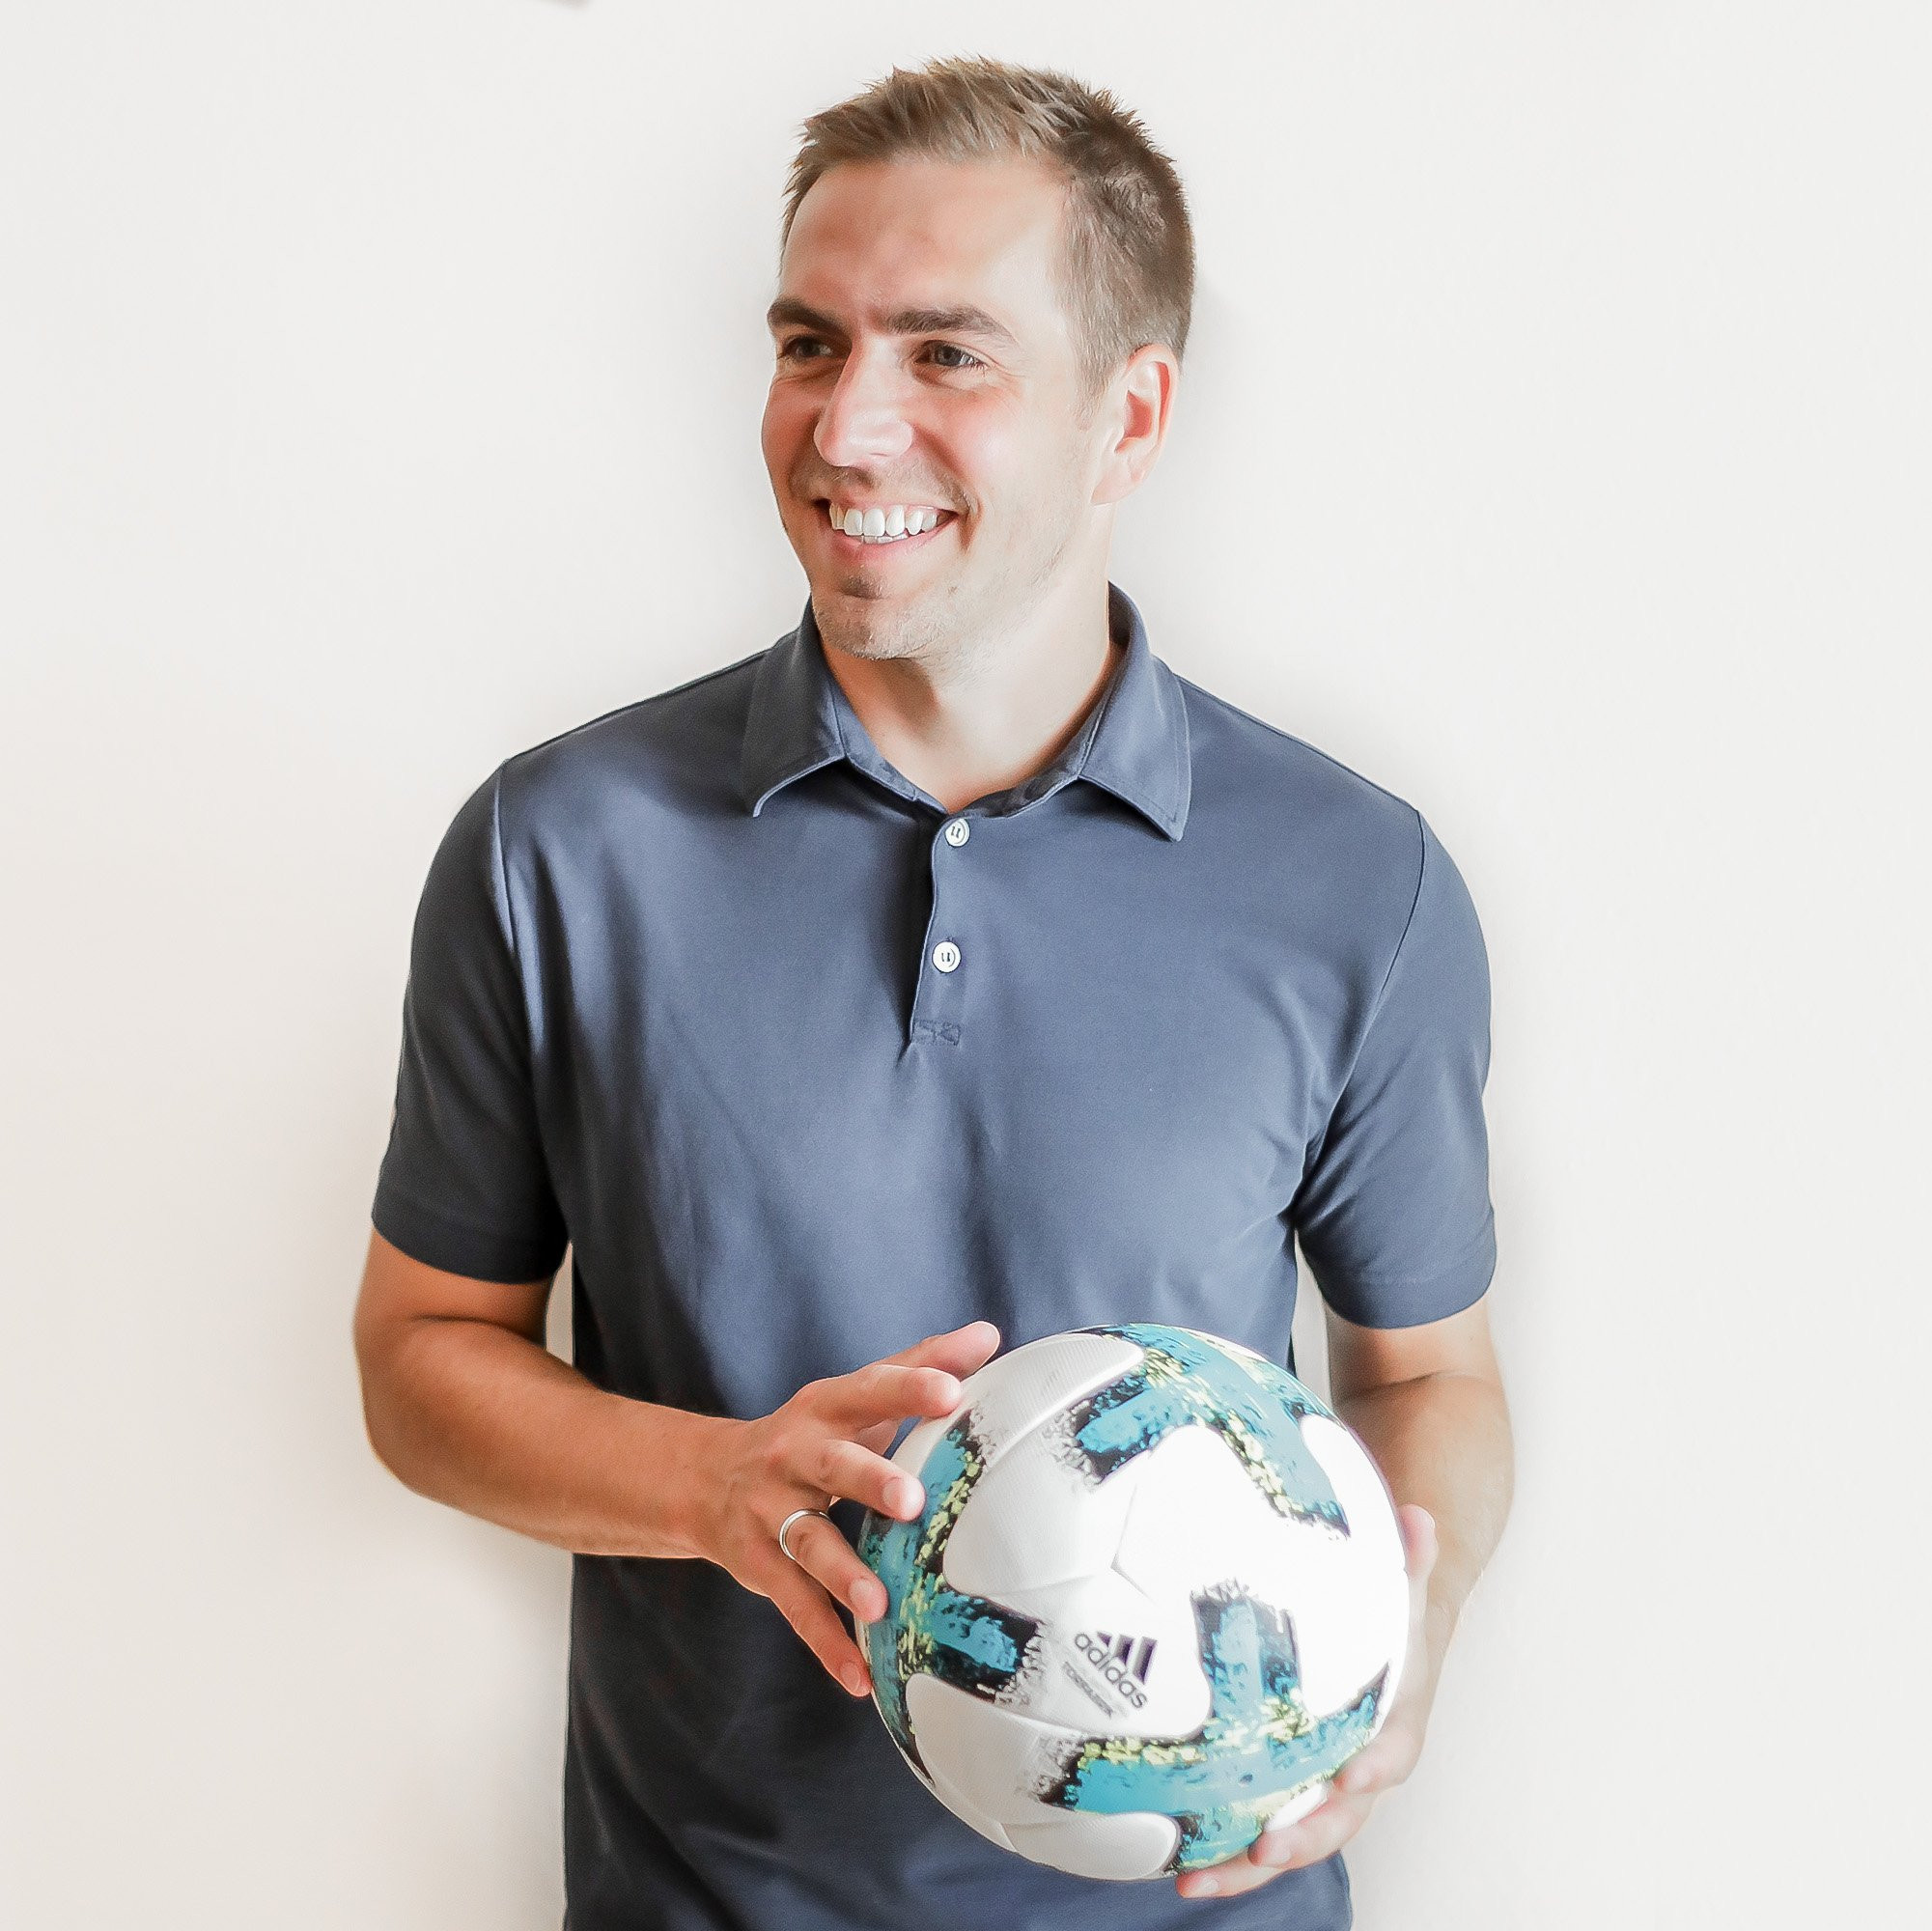 Former German footballer, Philipp Lahm is an ambassador for the bid and will lead the Organising Committee if they are successful ©Philipp Lahm/Twitter